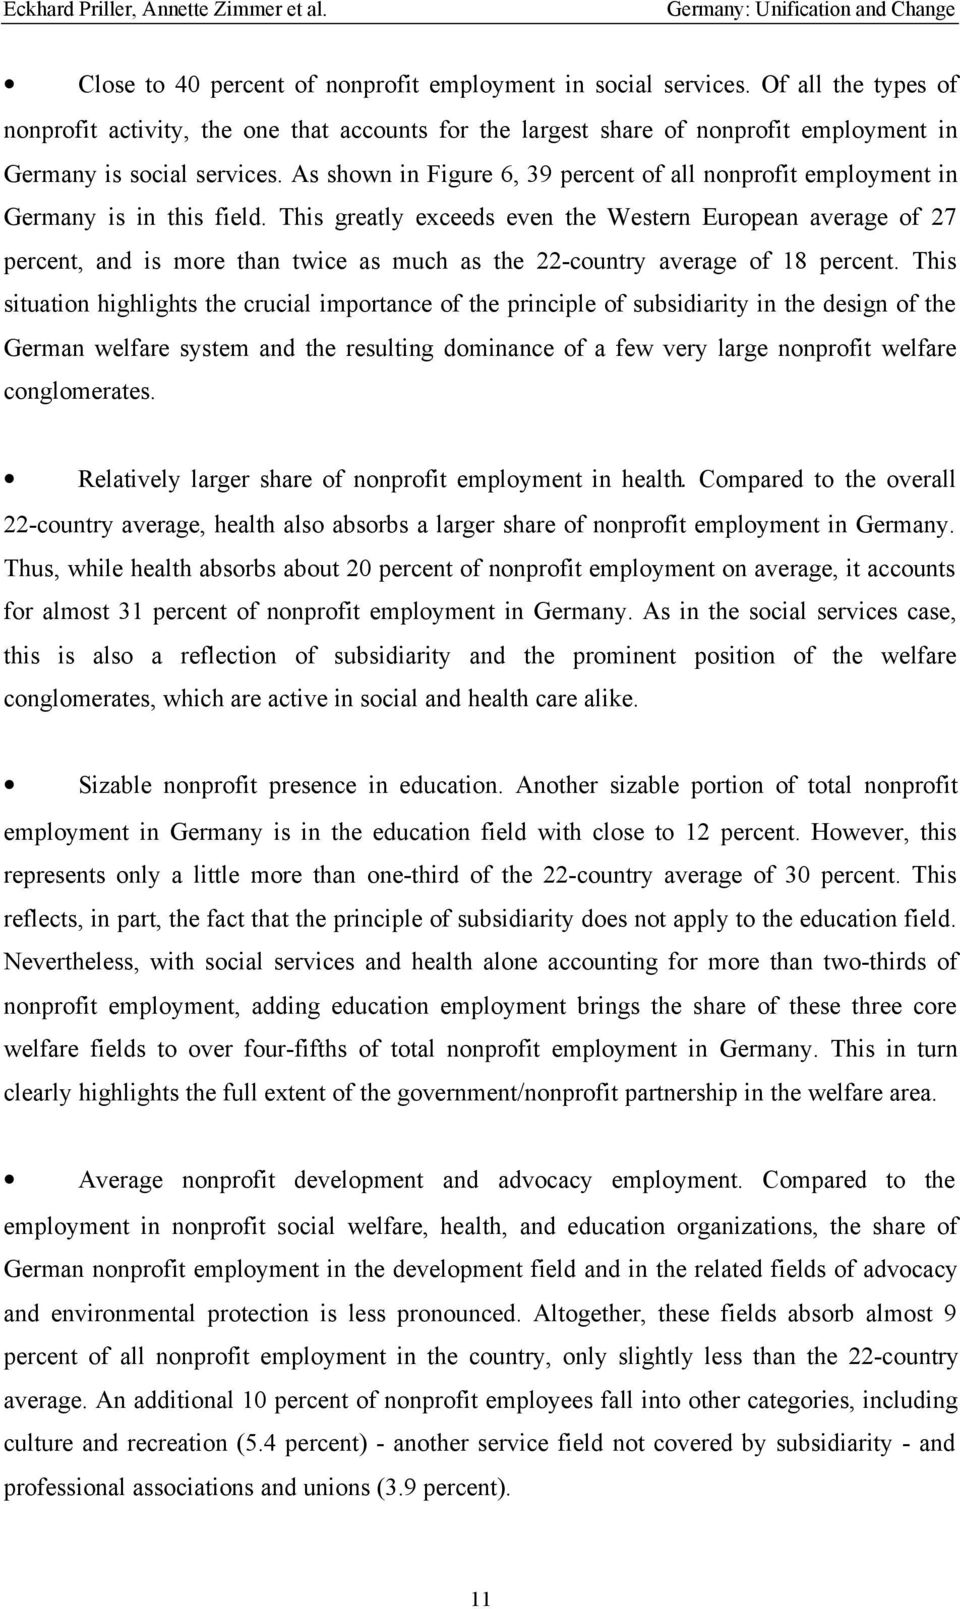 As shown in Figure 6, 39 percent of all nonprofit employment in Germany is in this field.